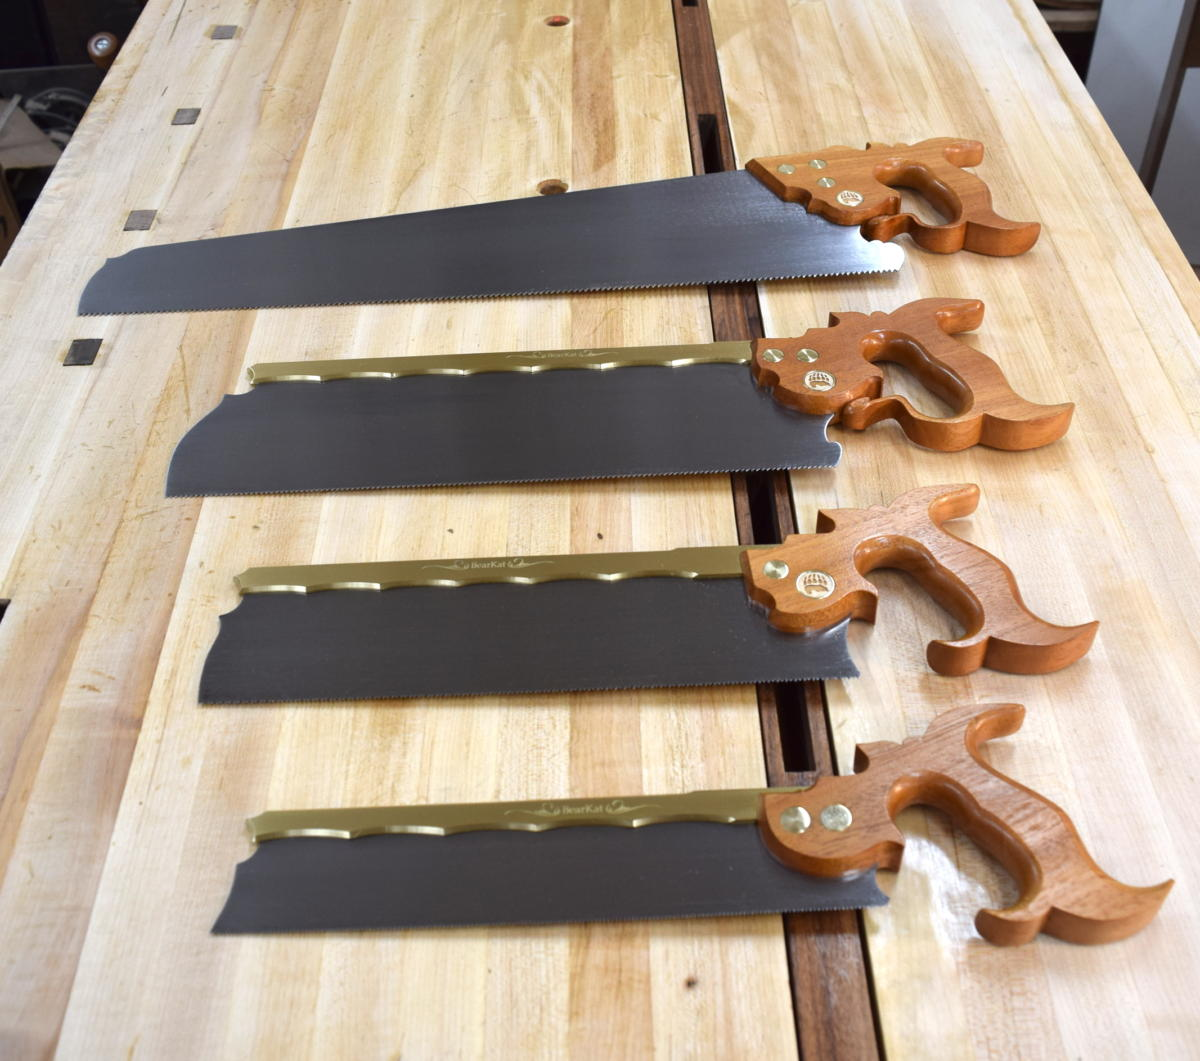 Bearkat Wood All About Woodworking